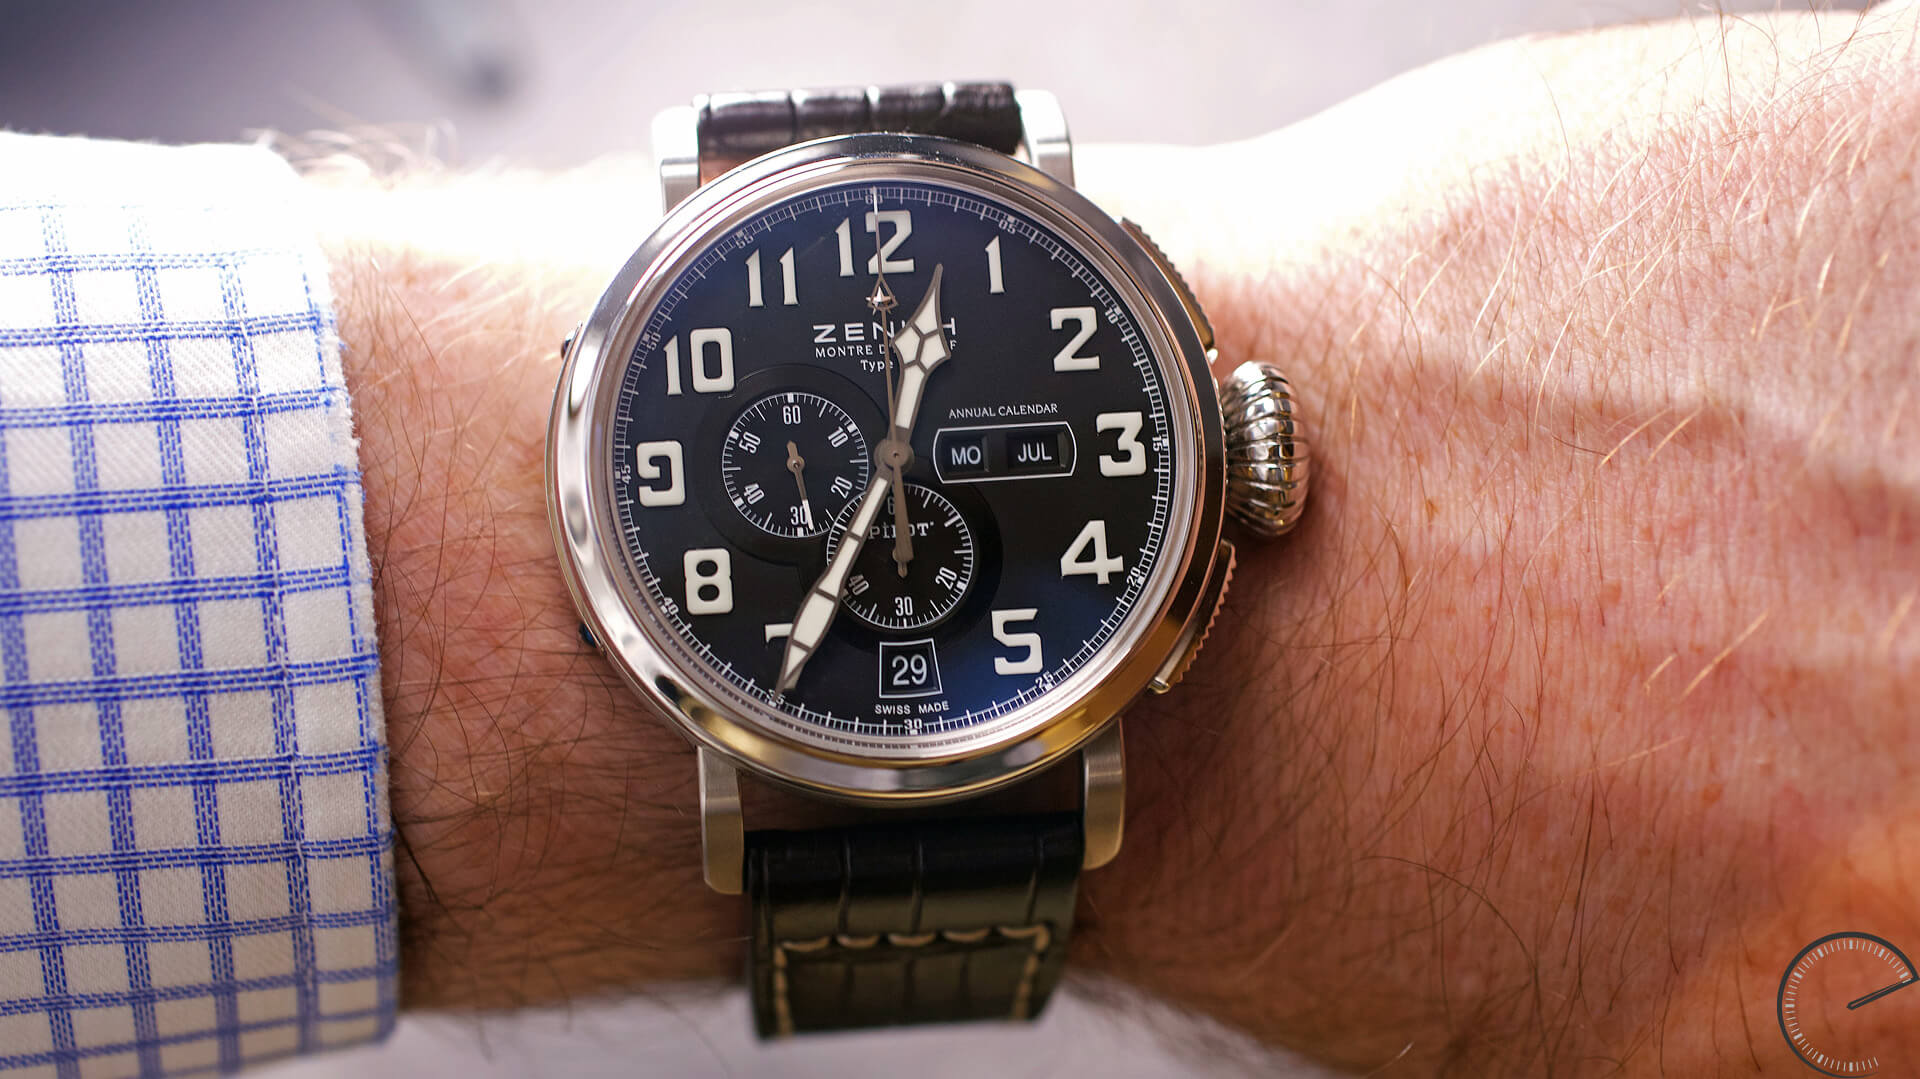 Image of Zenith Pilot Annual Calendar with chronograph